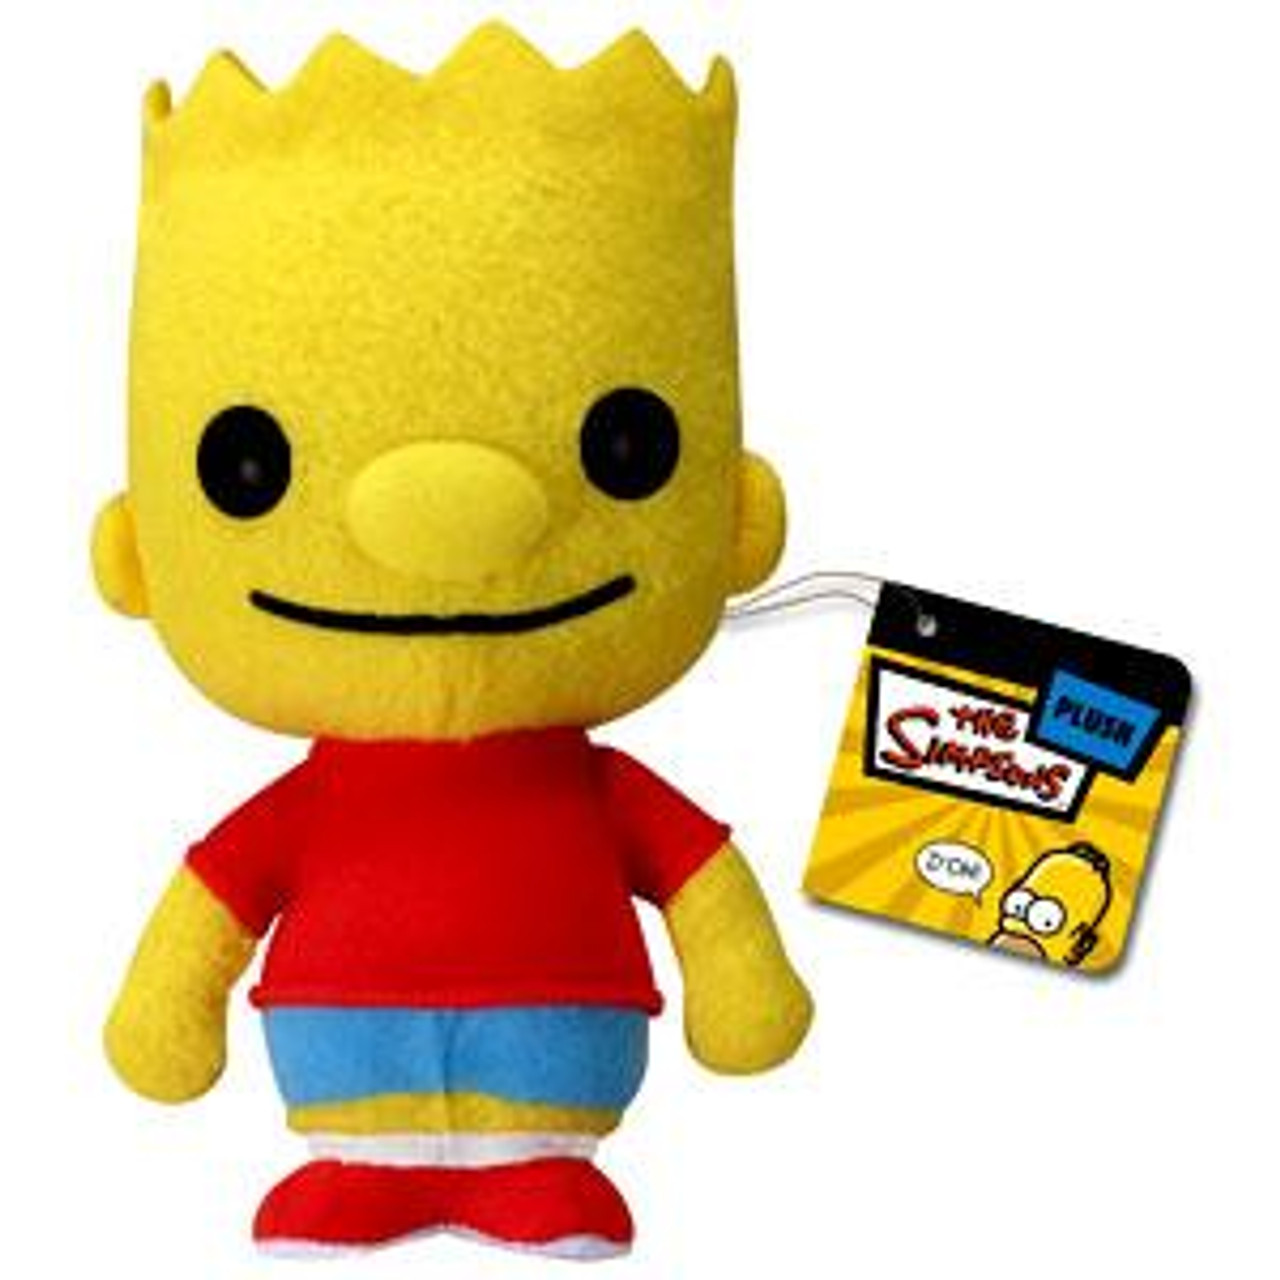 Funko The Simpsons Bart Simpson 5-Inch Plushie